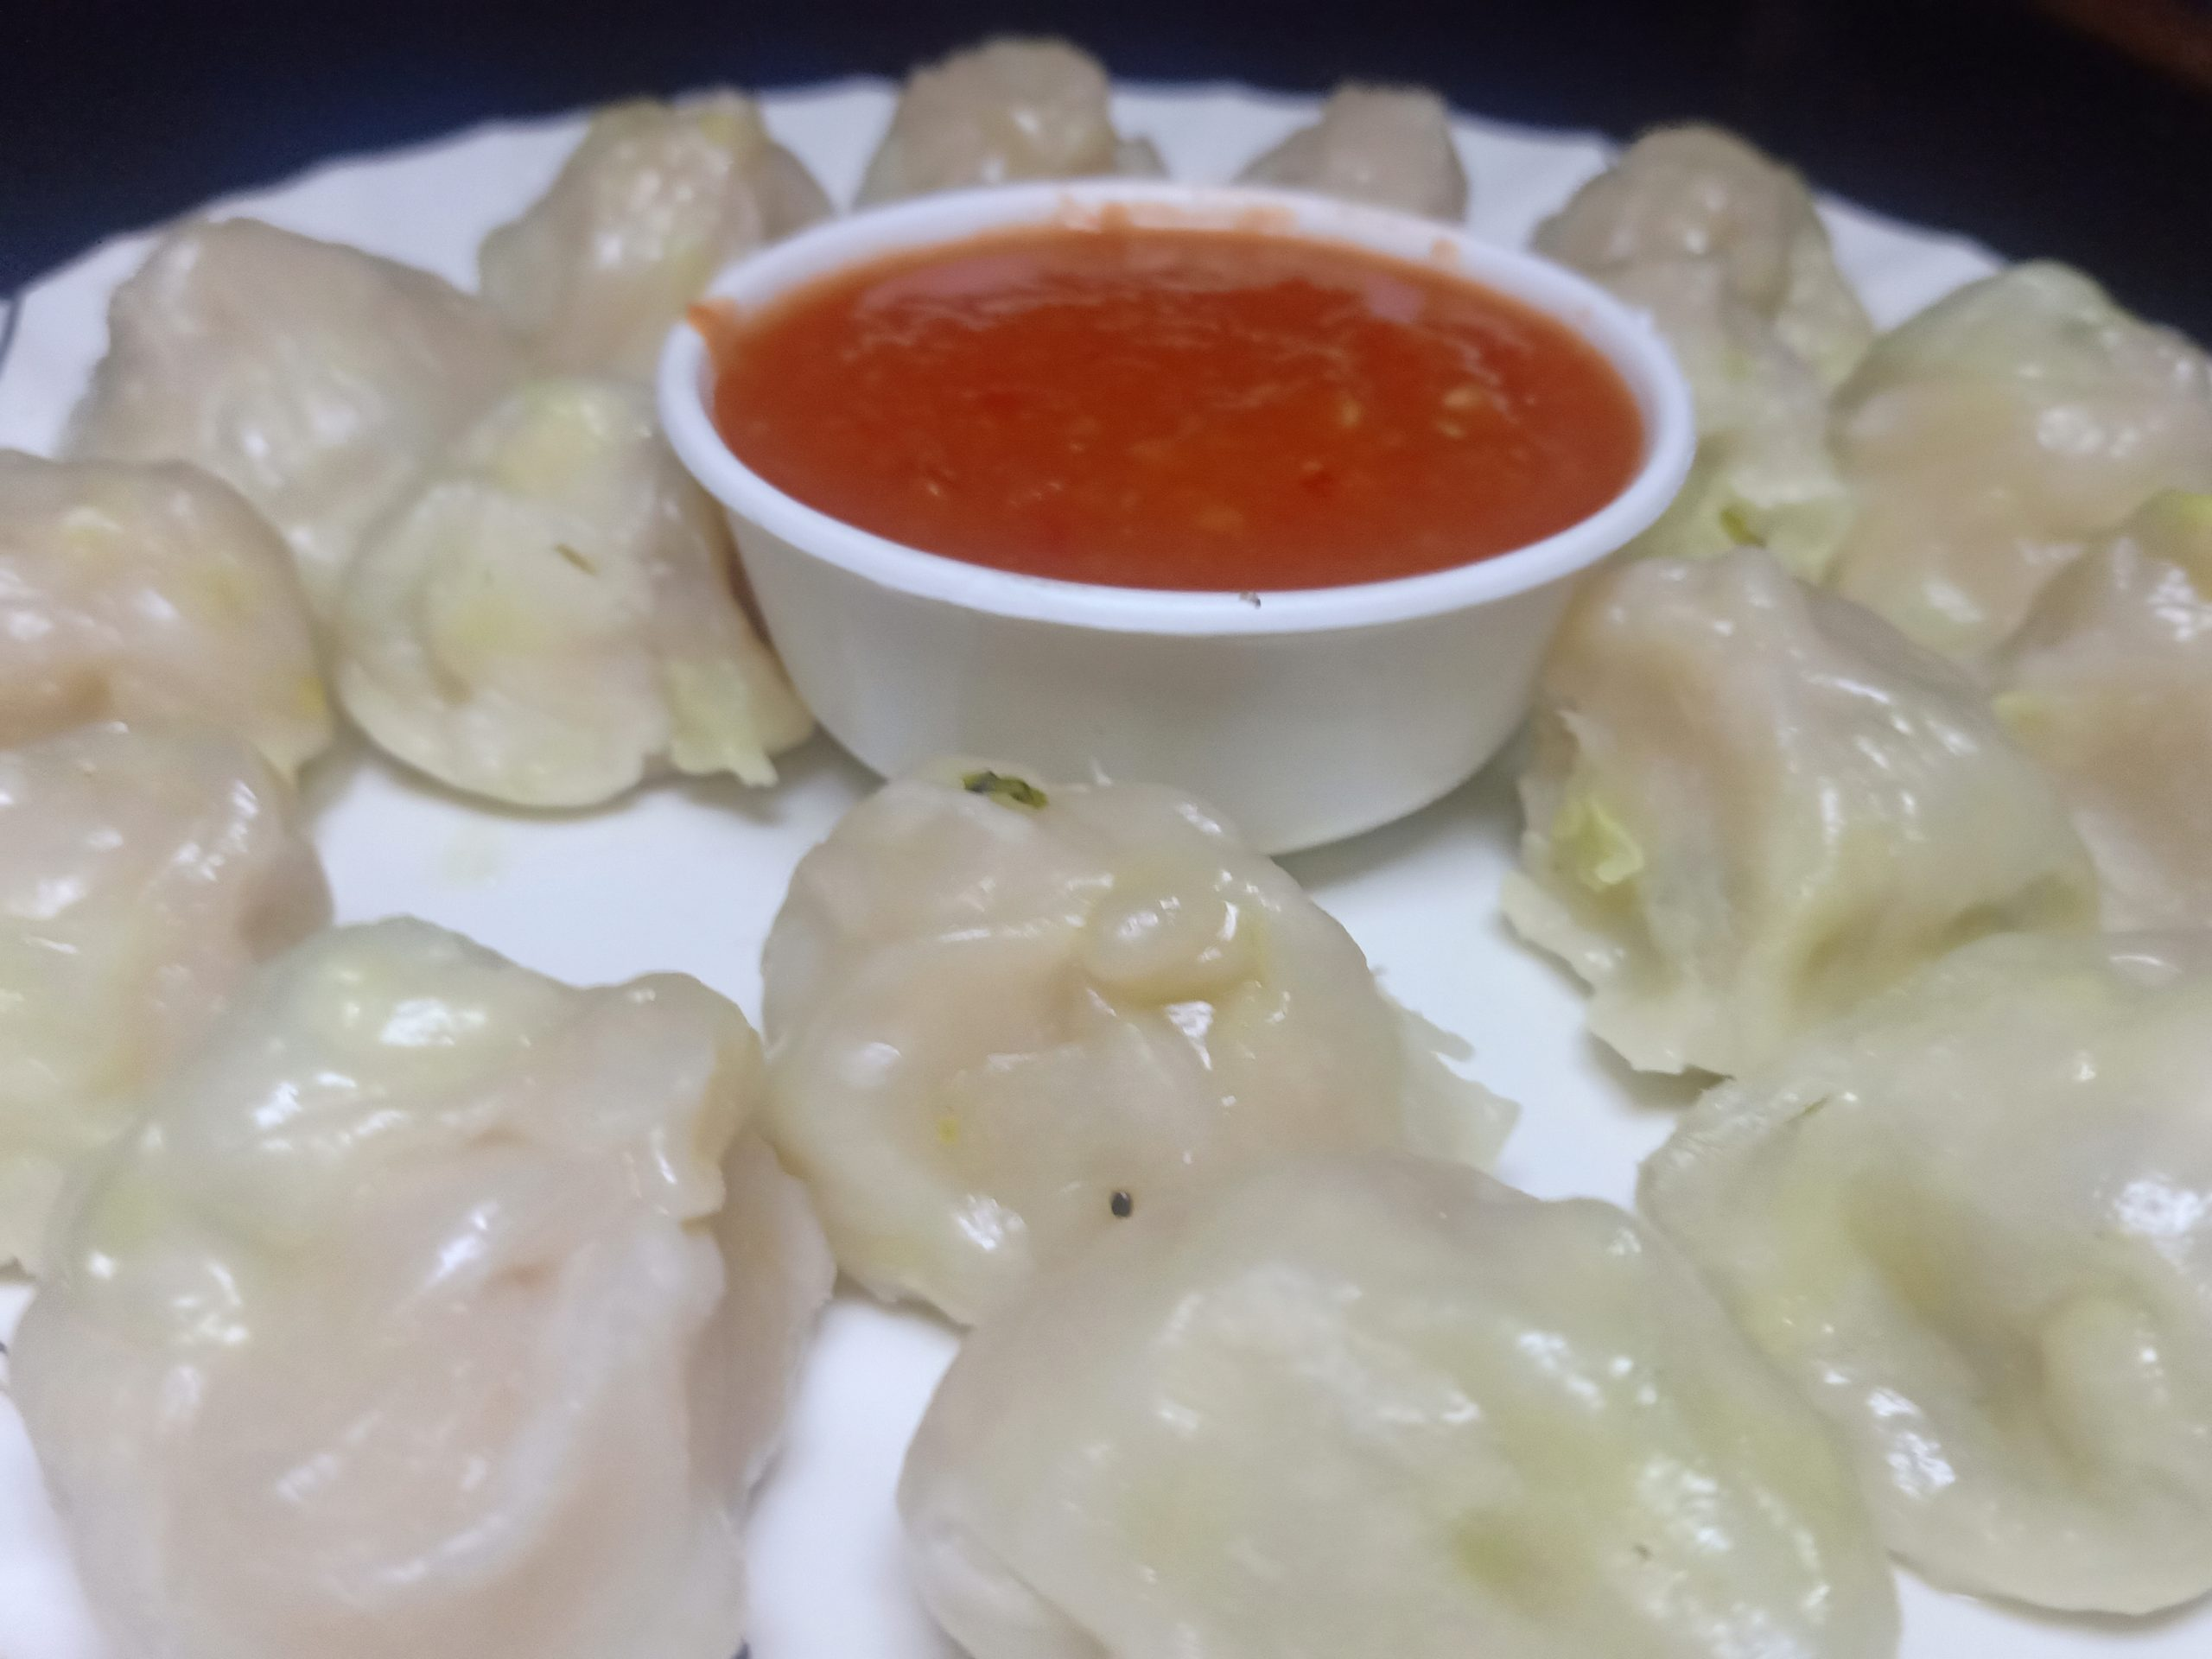 Momos and sauce in the plate